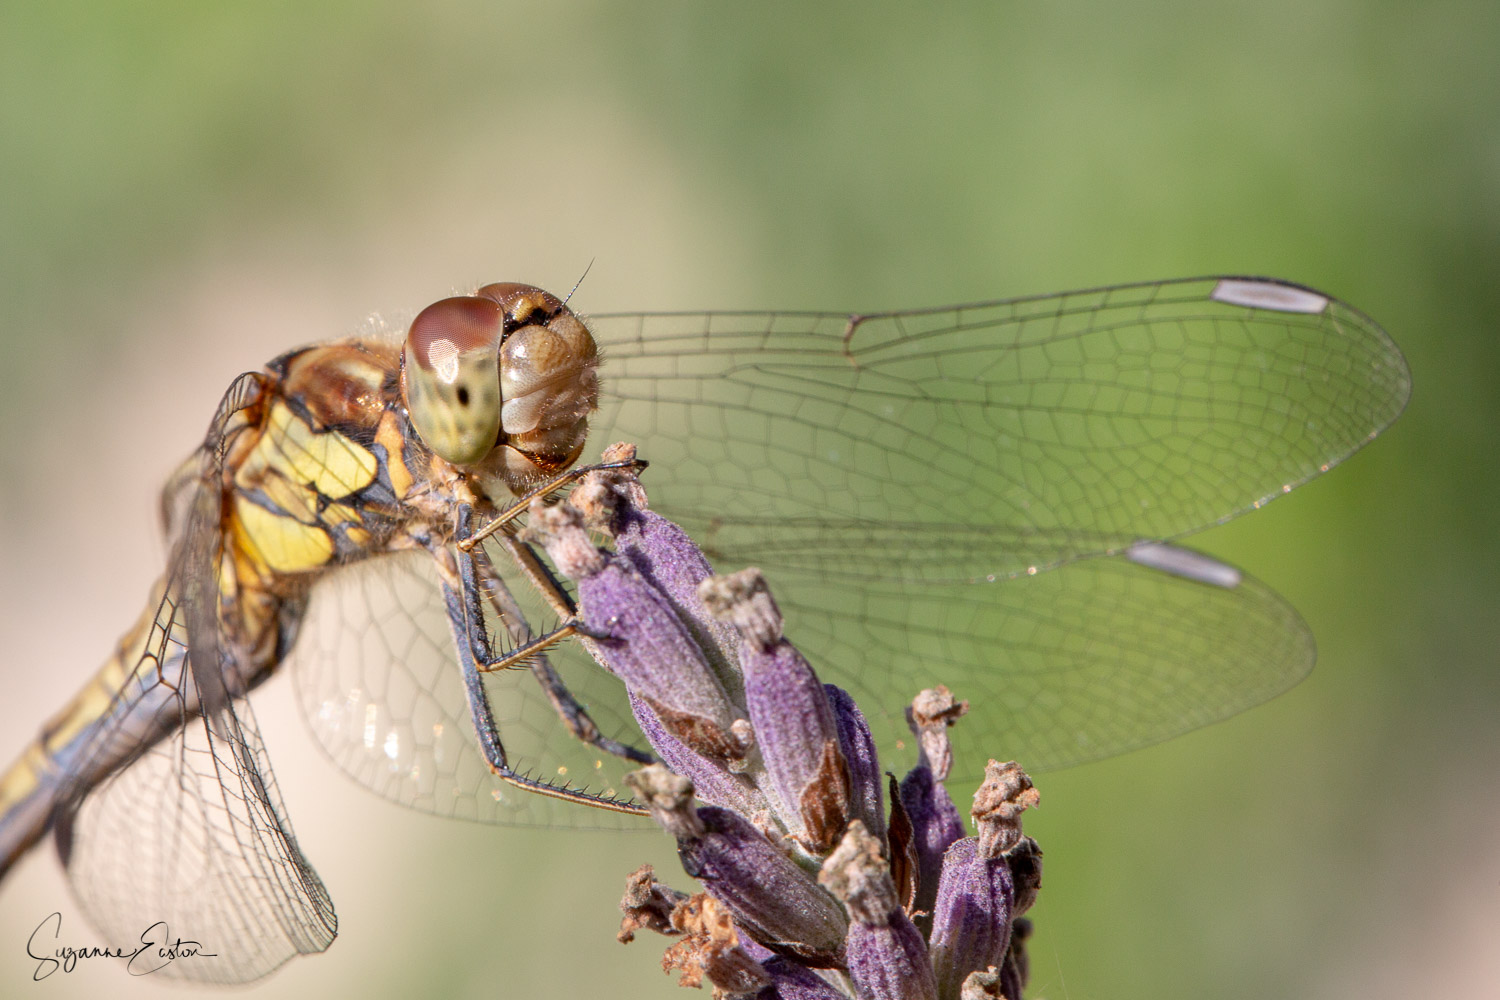 Common darter dragonfly perched